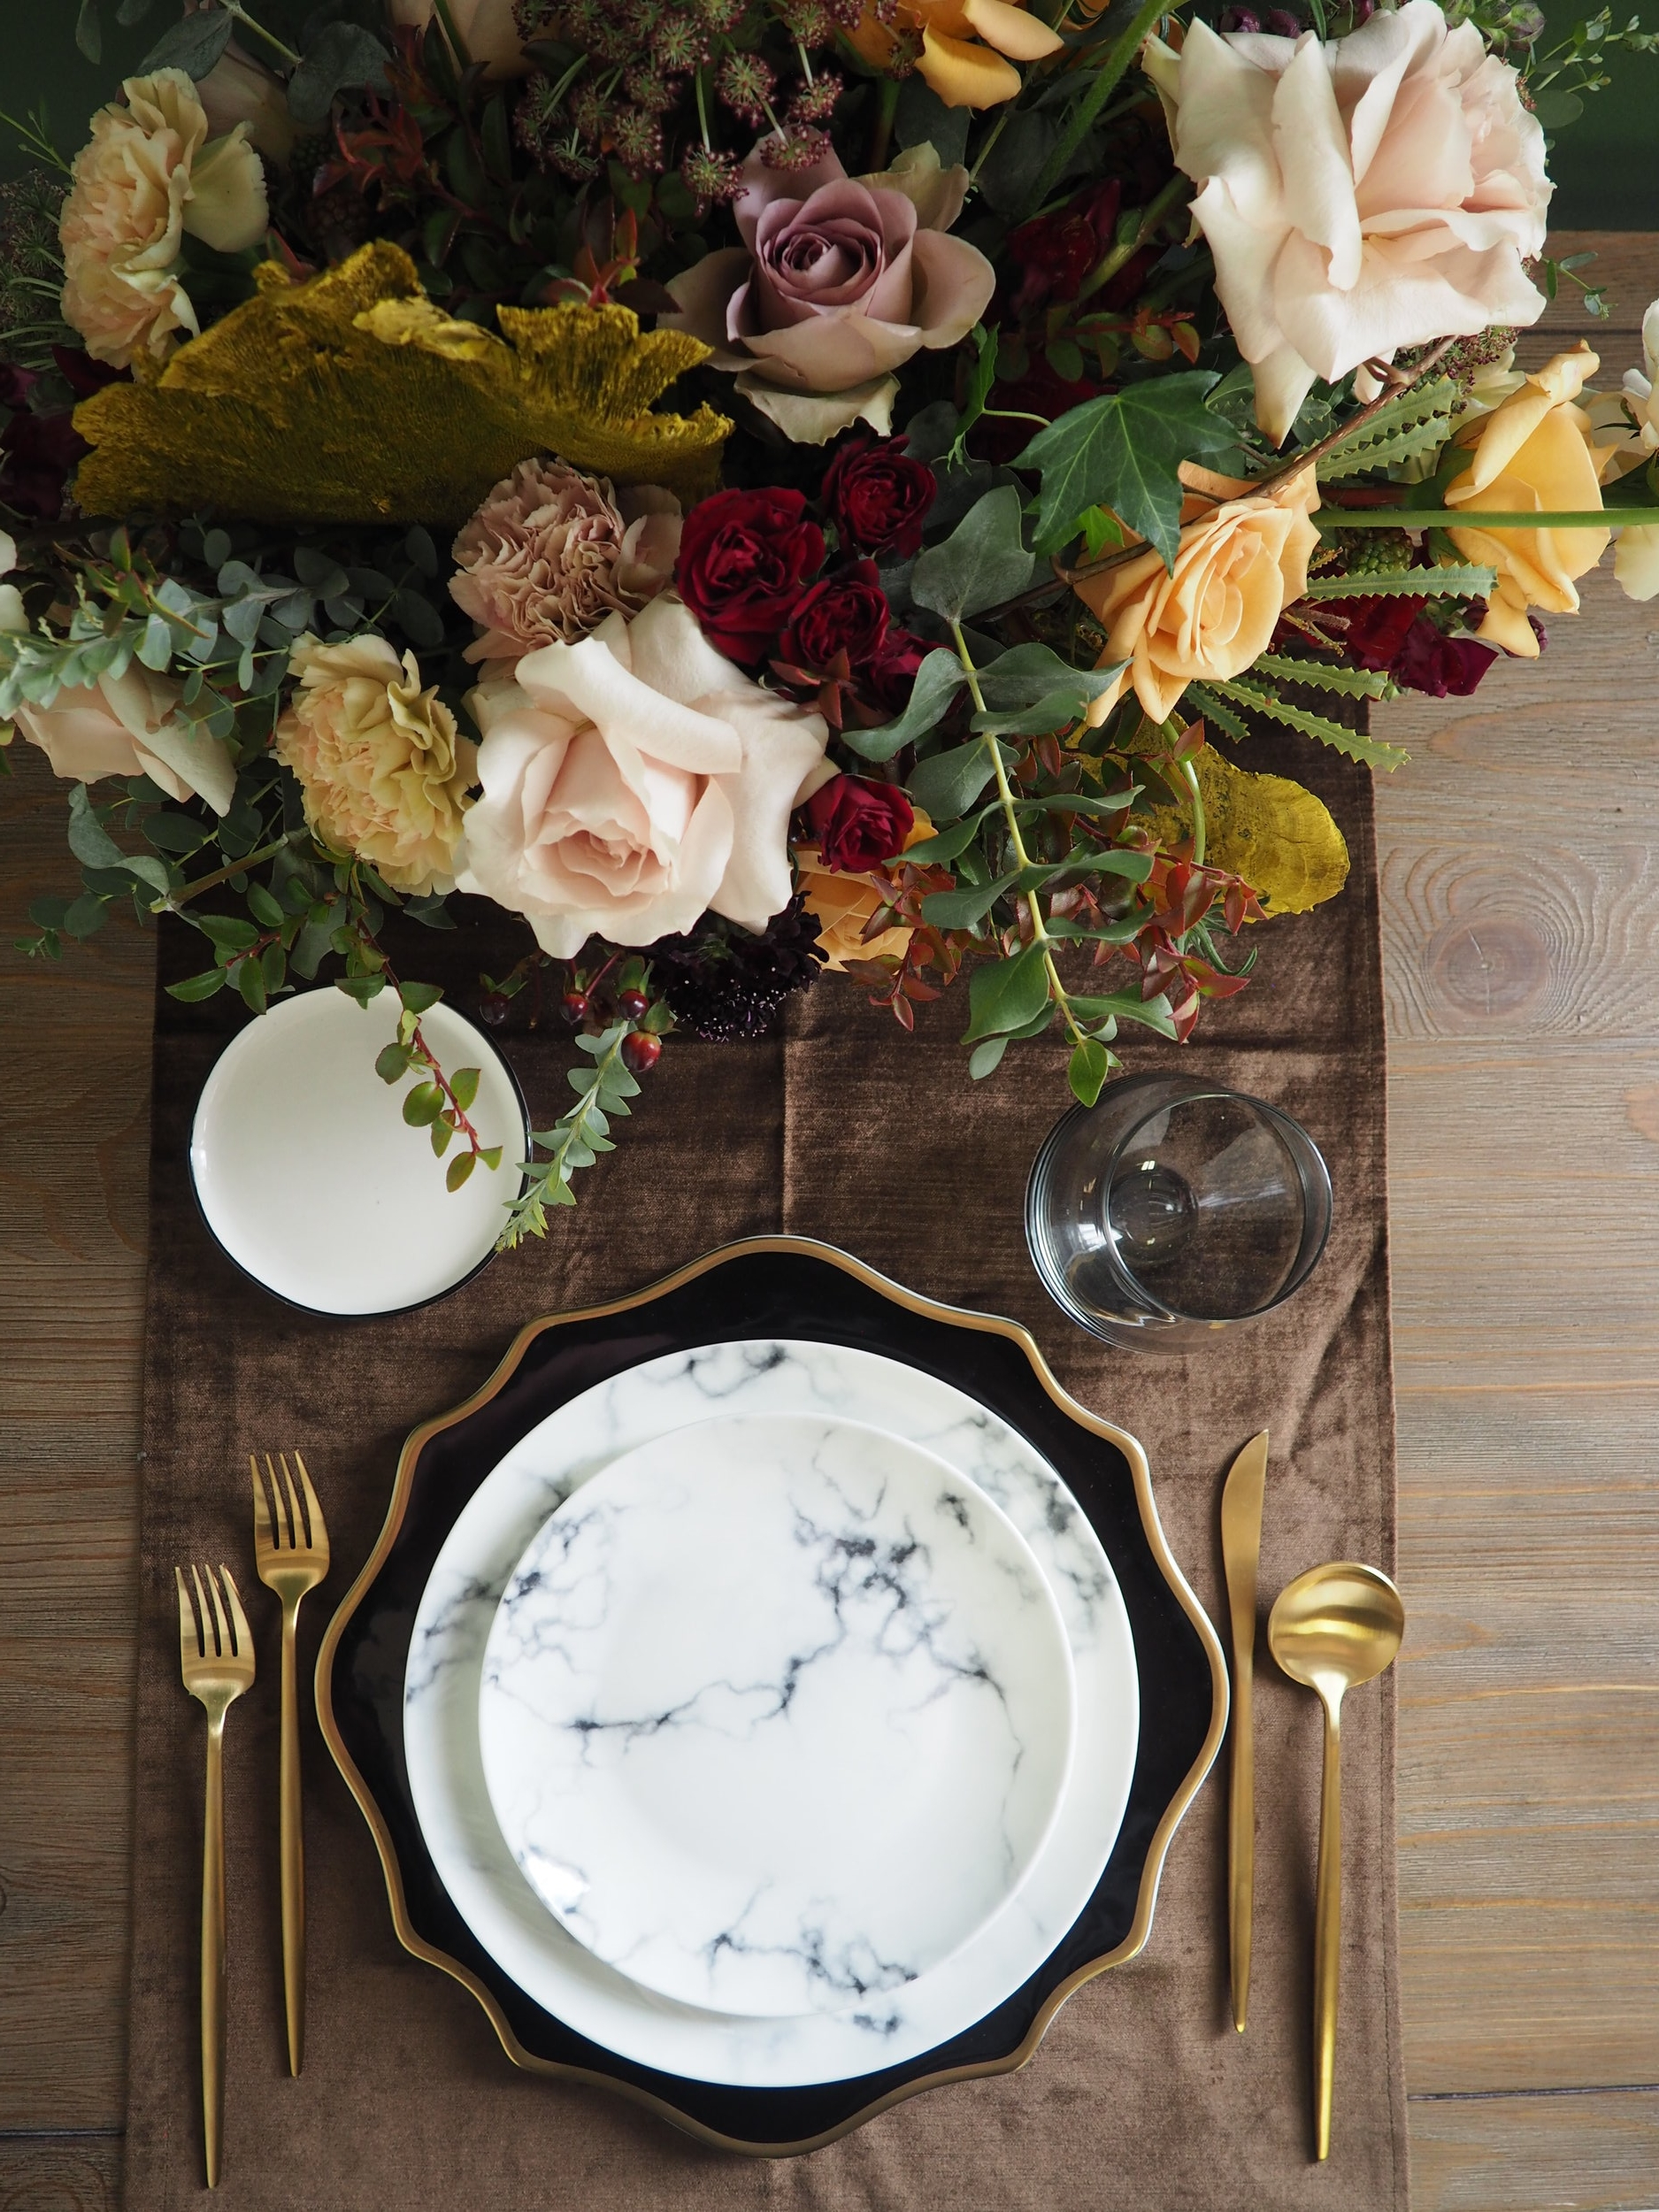 Smoke Grey Stemless, Gold Flatware, Aura Scalloped Black & Gold Charger, Marble Dinner and Salad Plates, Aura Black and White B&B